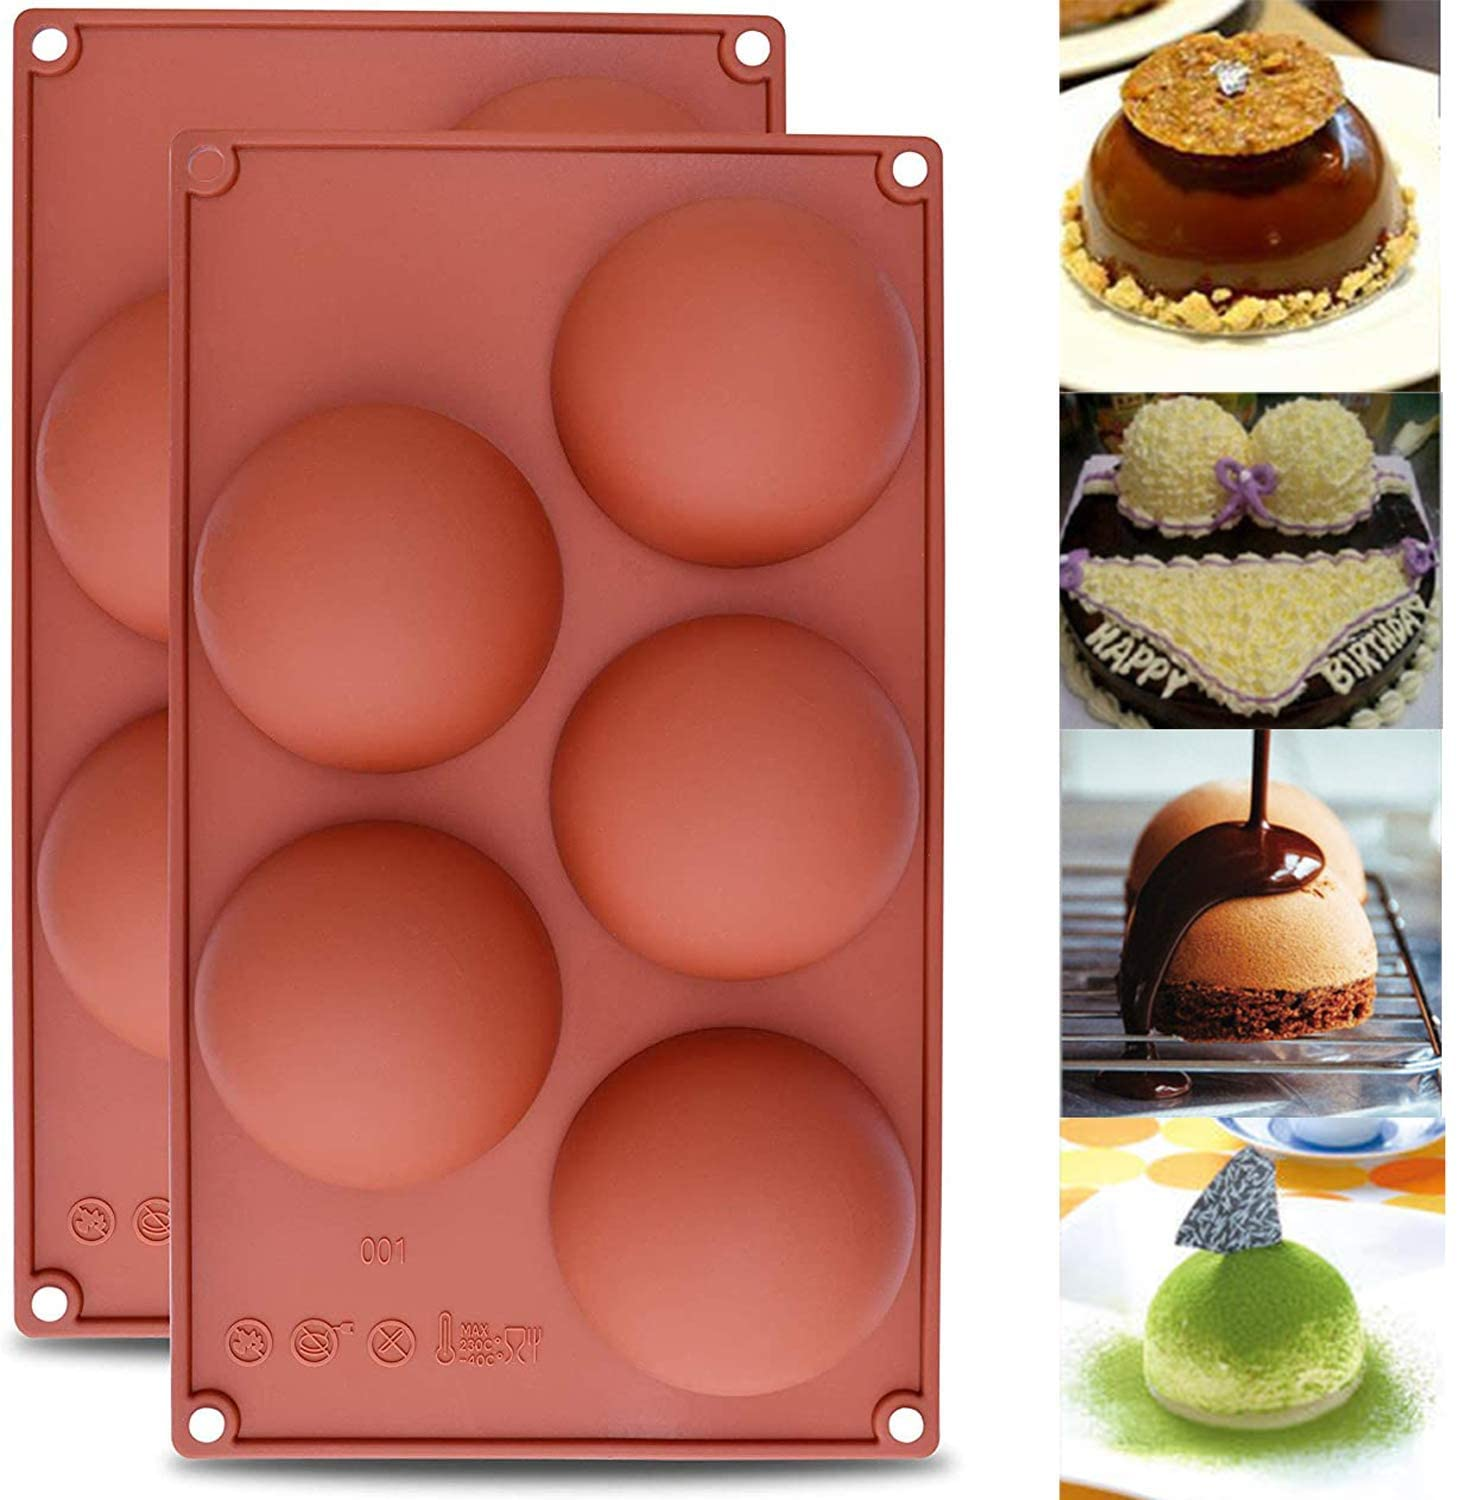 Only Today $9.99-Hot Chocolate Bomb Mold